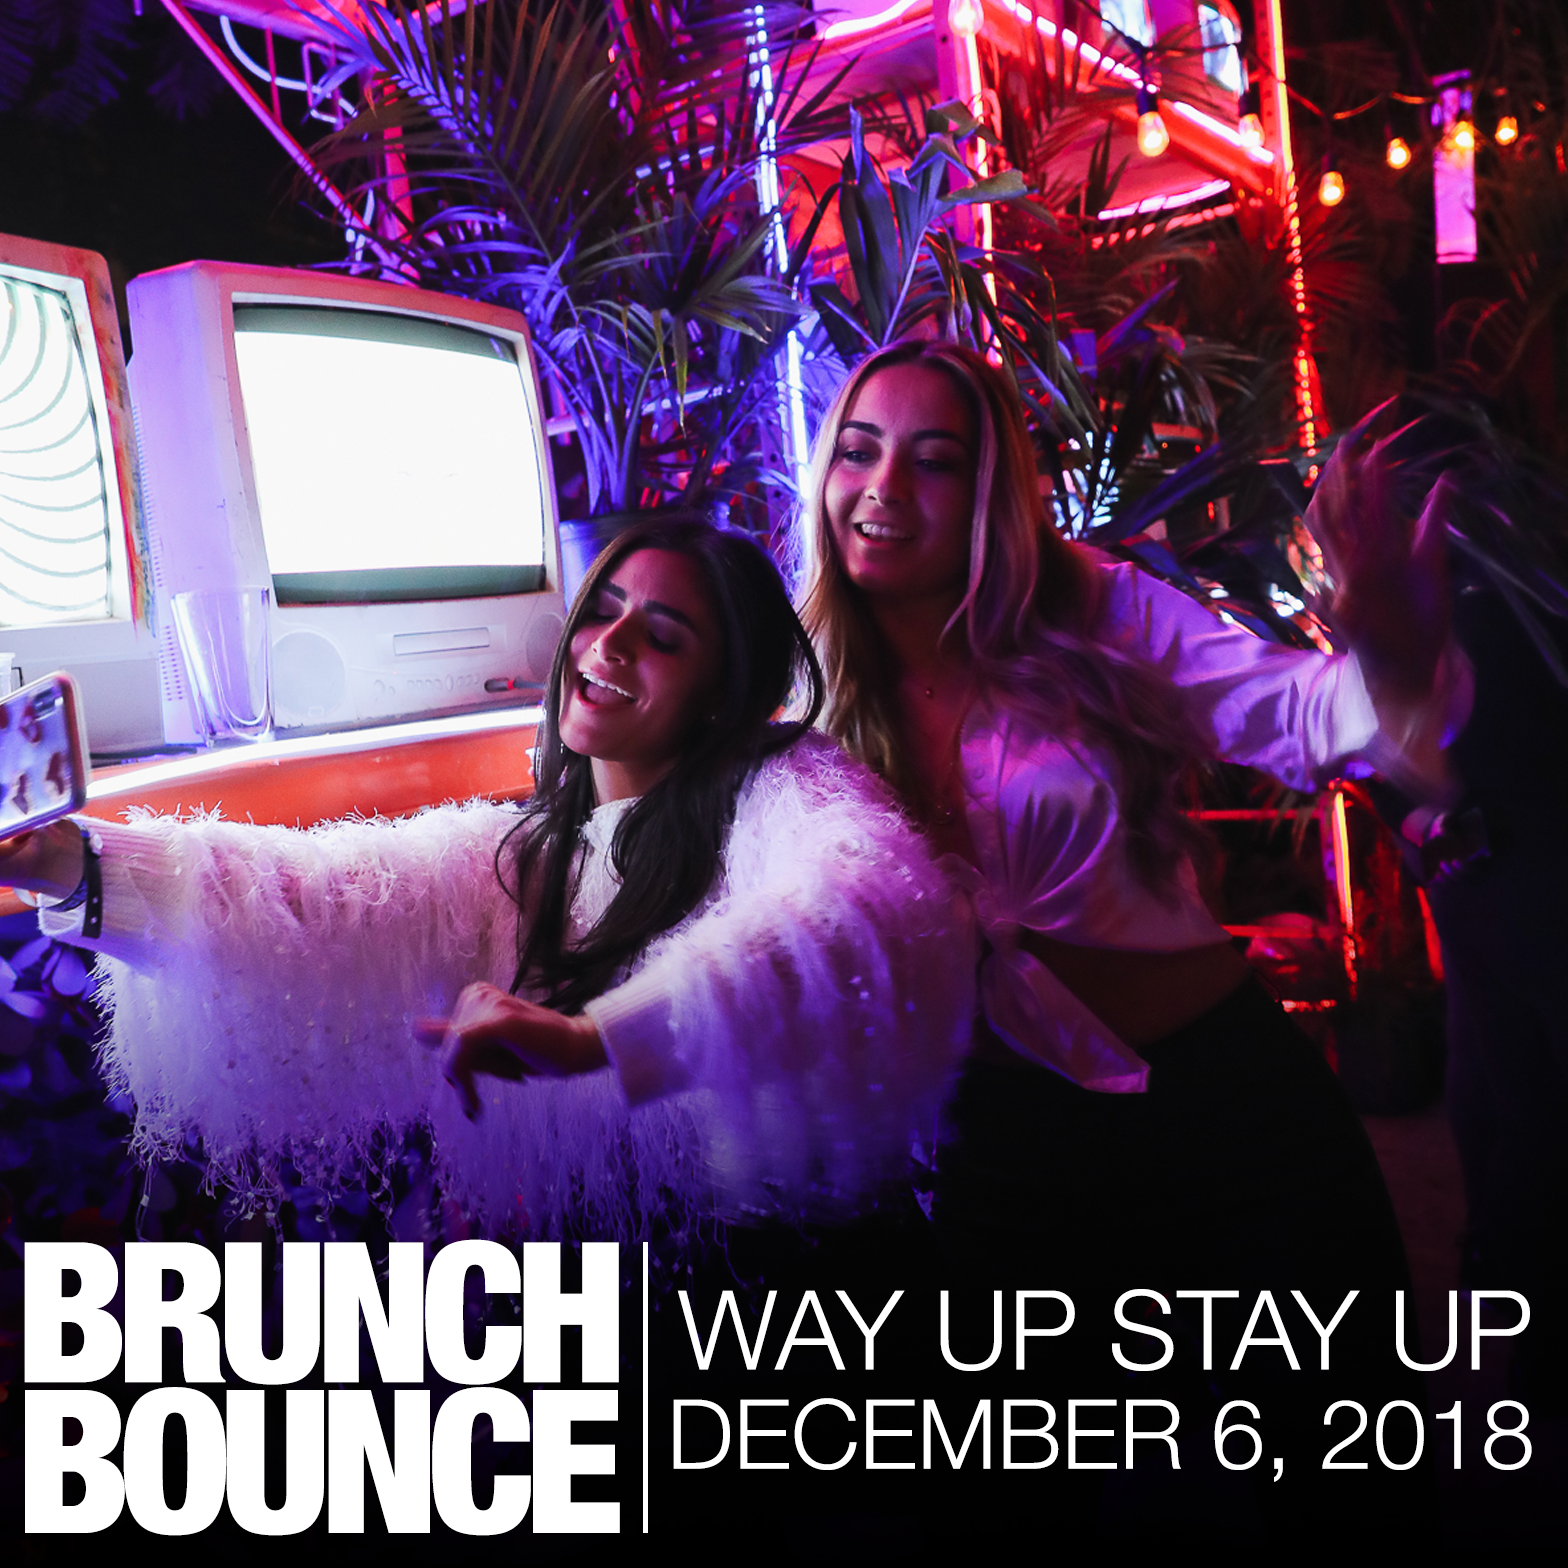 Way Up Stay Up 12.6.18